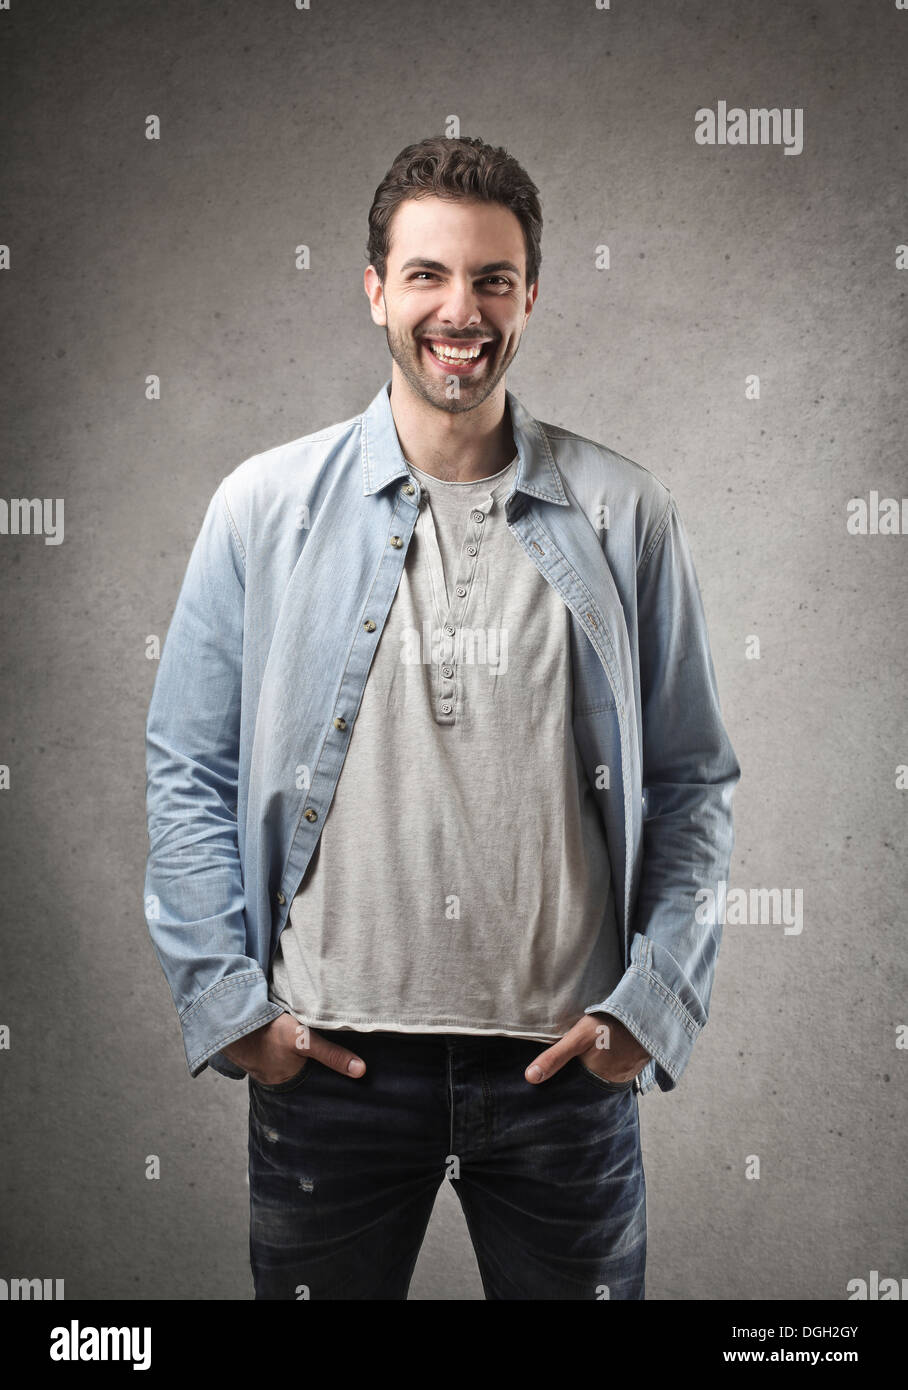 Portrait of a smiling man Photo Stock